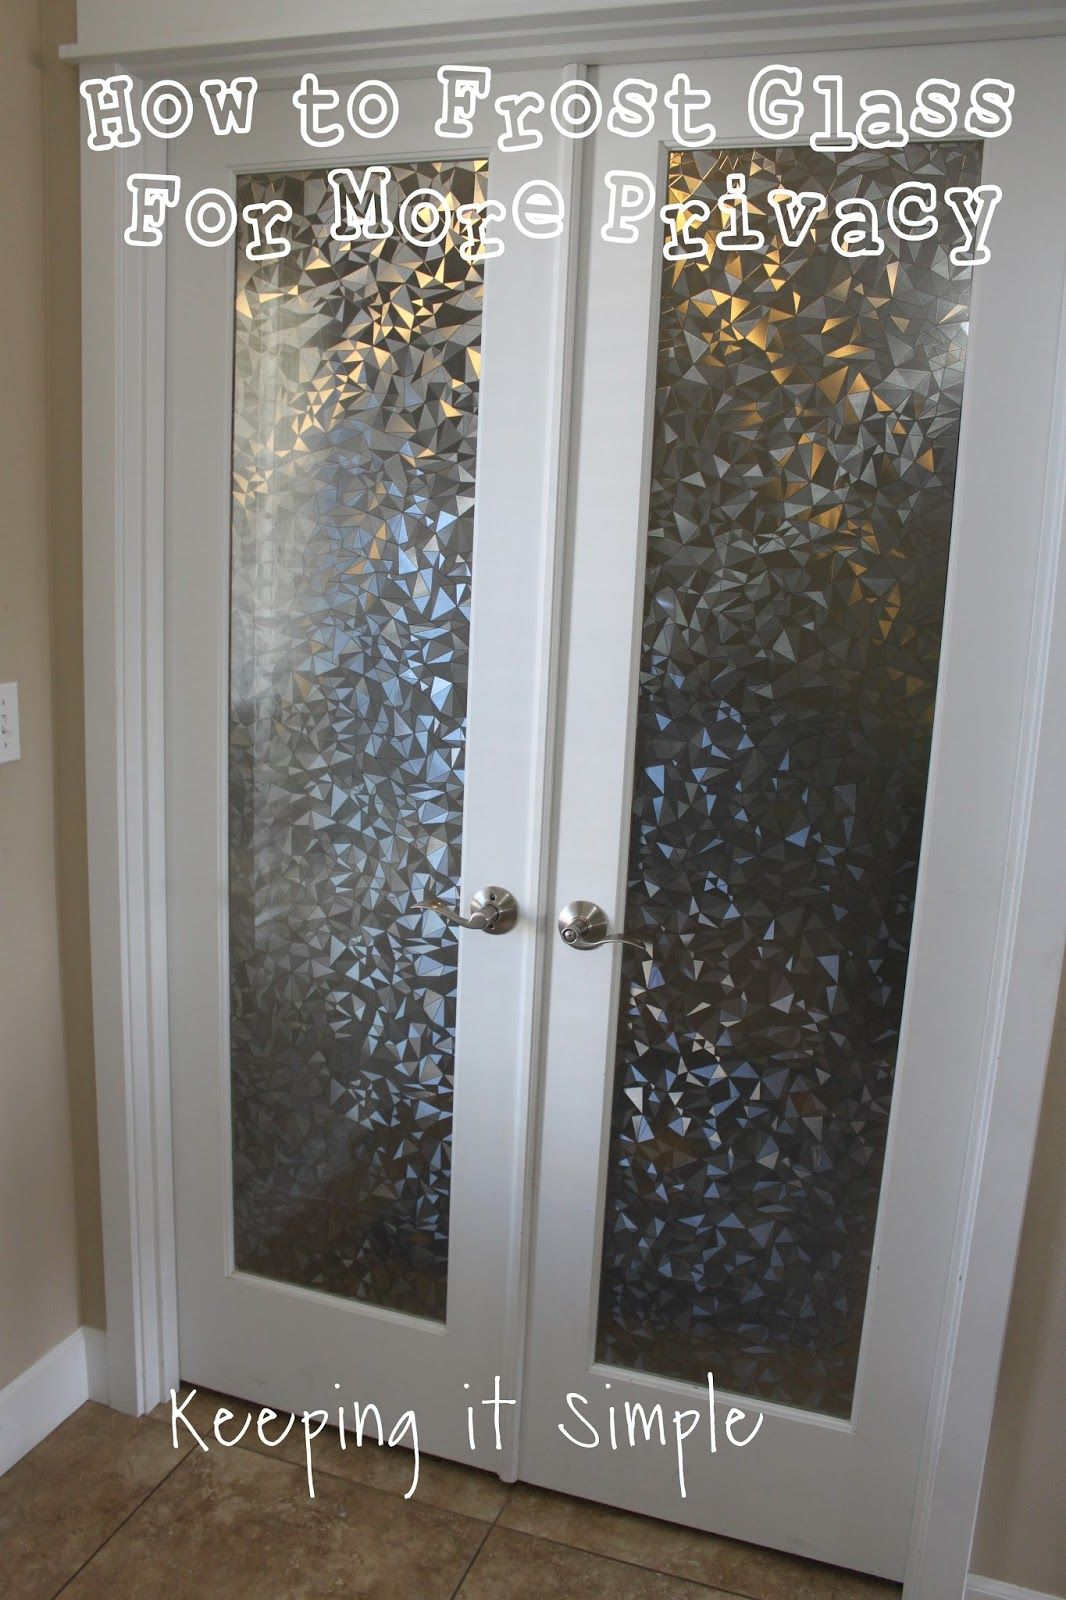 How to Frost Glass with Vinyl For More Privacy • Keeping it Simple